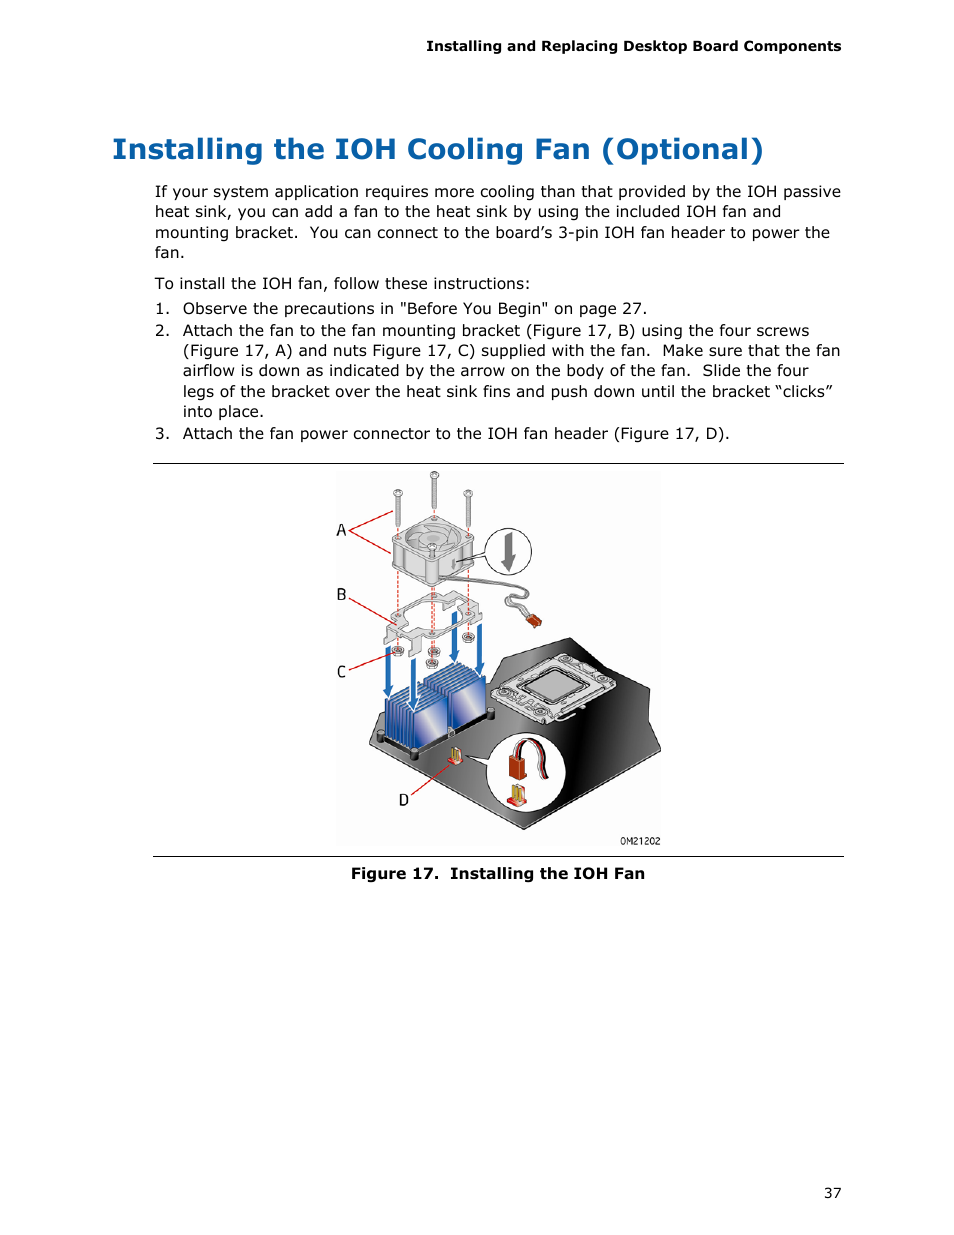 Intel Computer Fan Wiring Diagram Radiator Cpu Installing The Ioh Cooling Optional Dx58so User Manual On